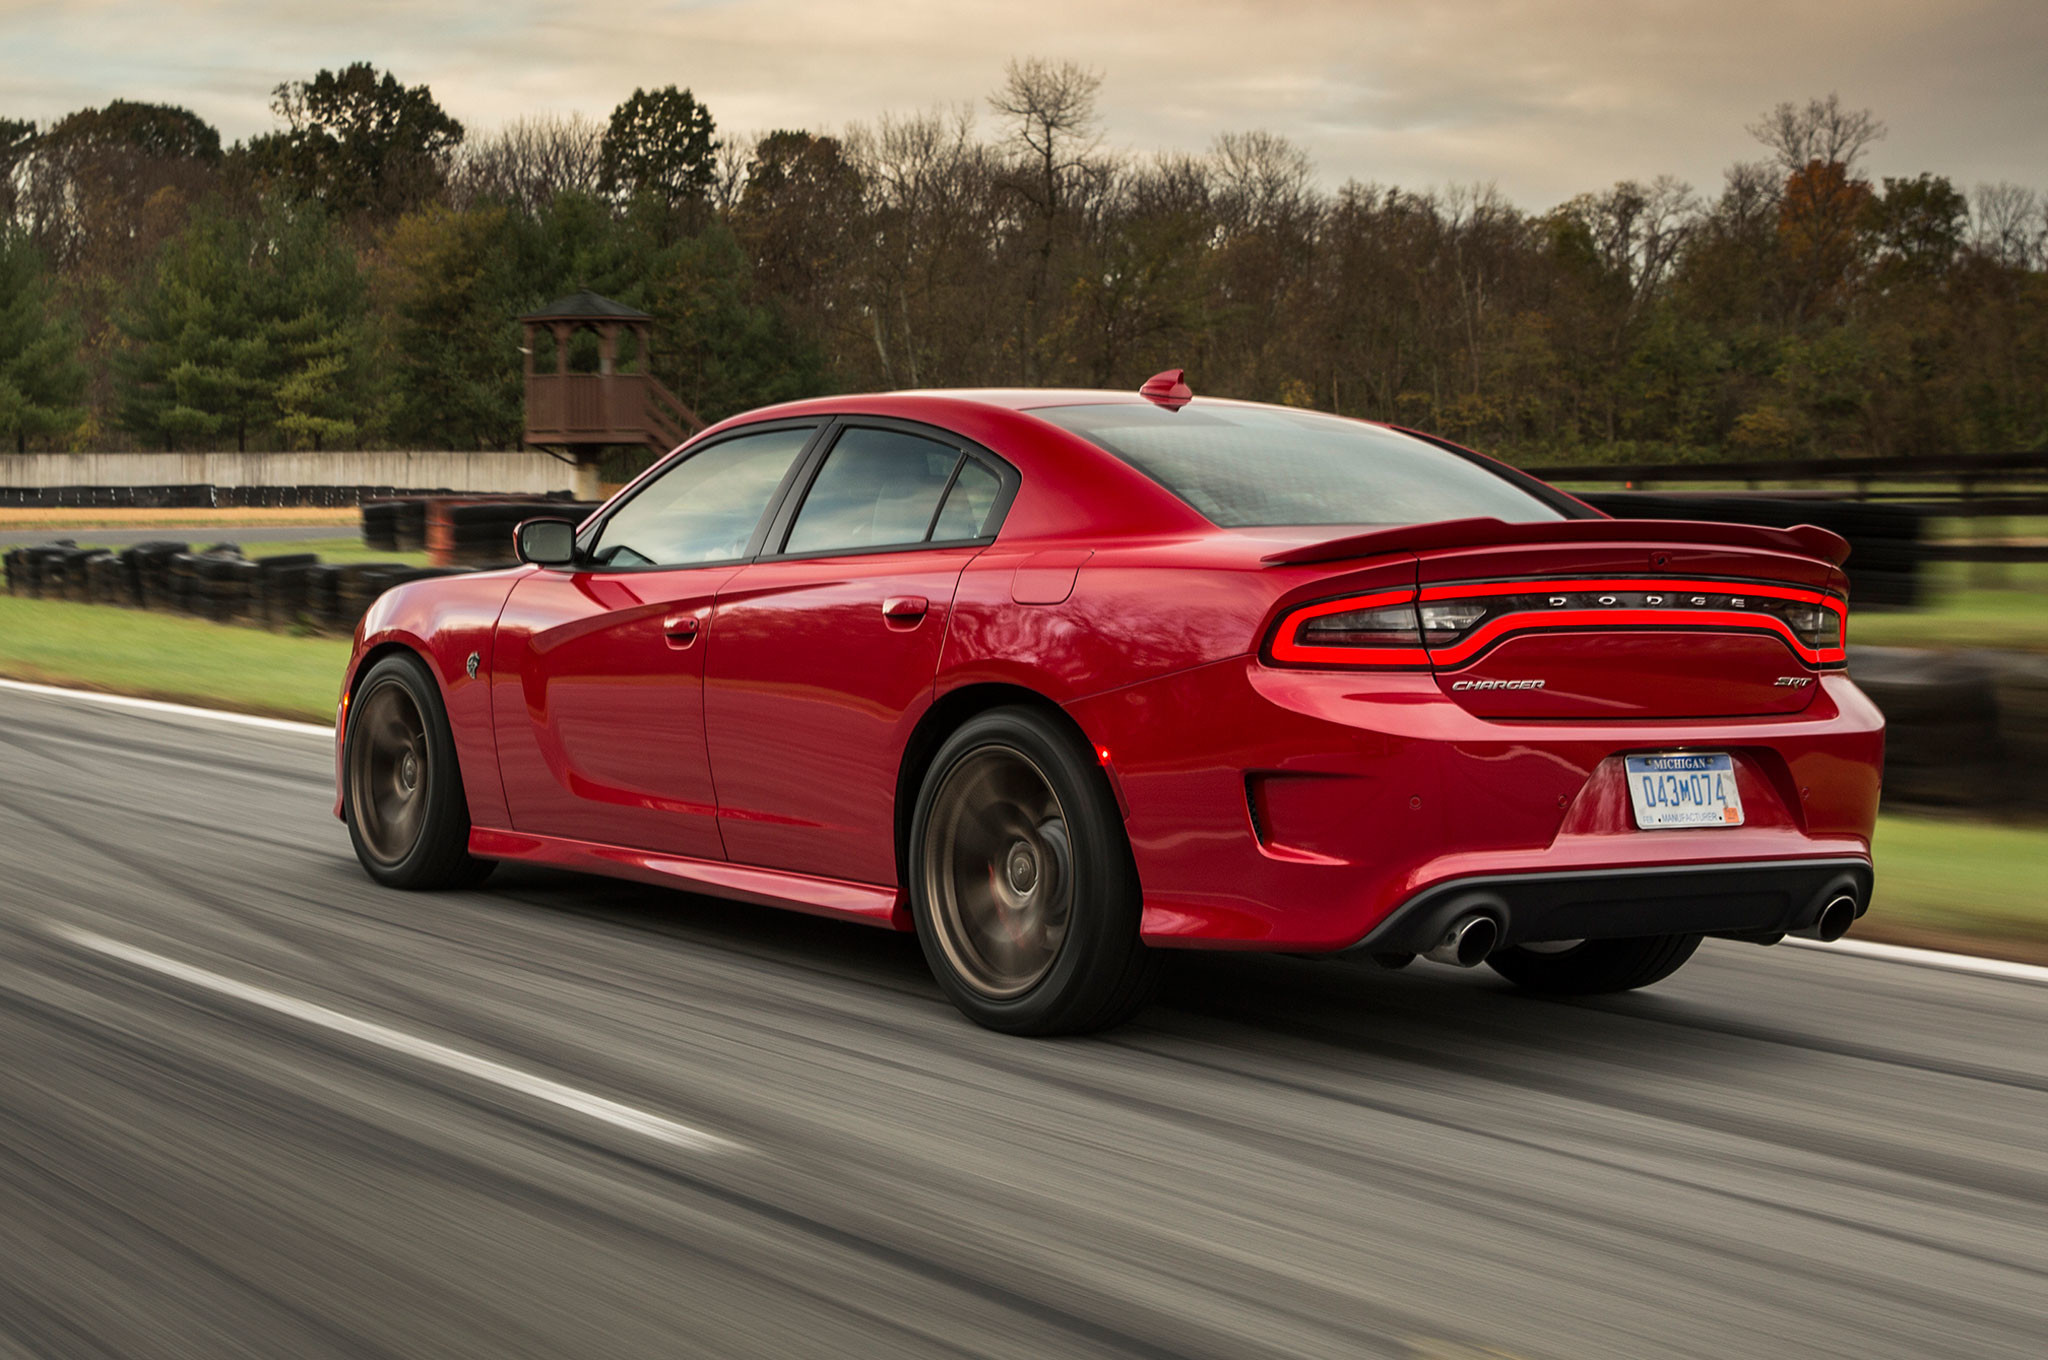 2015 dodge charger srt hellcat rear three quarter view in motion 9